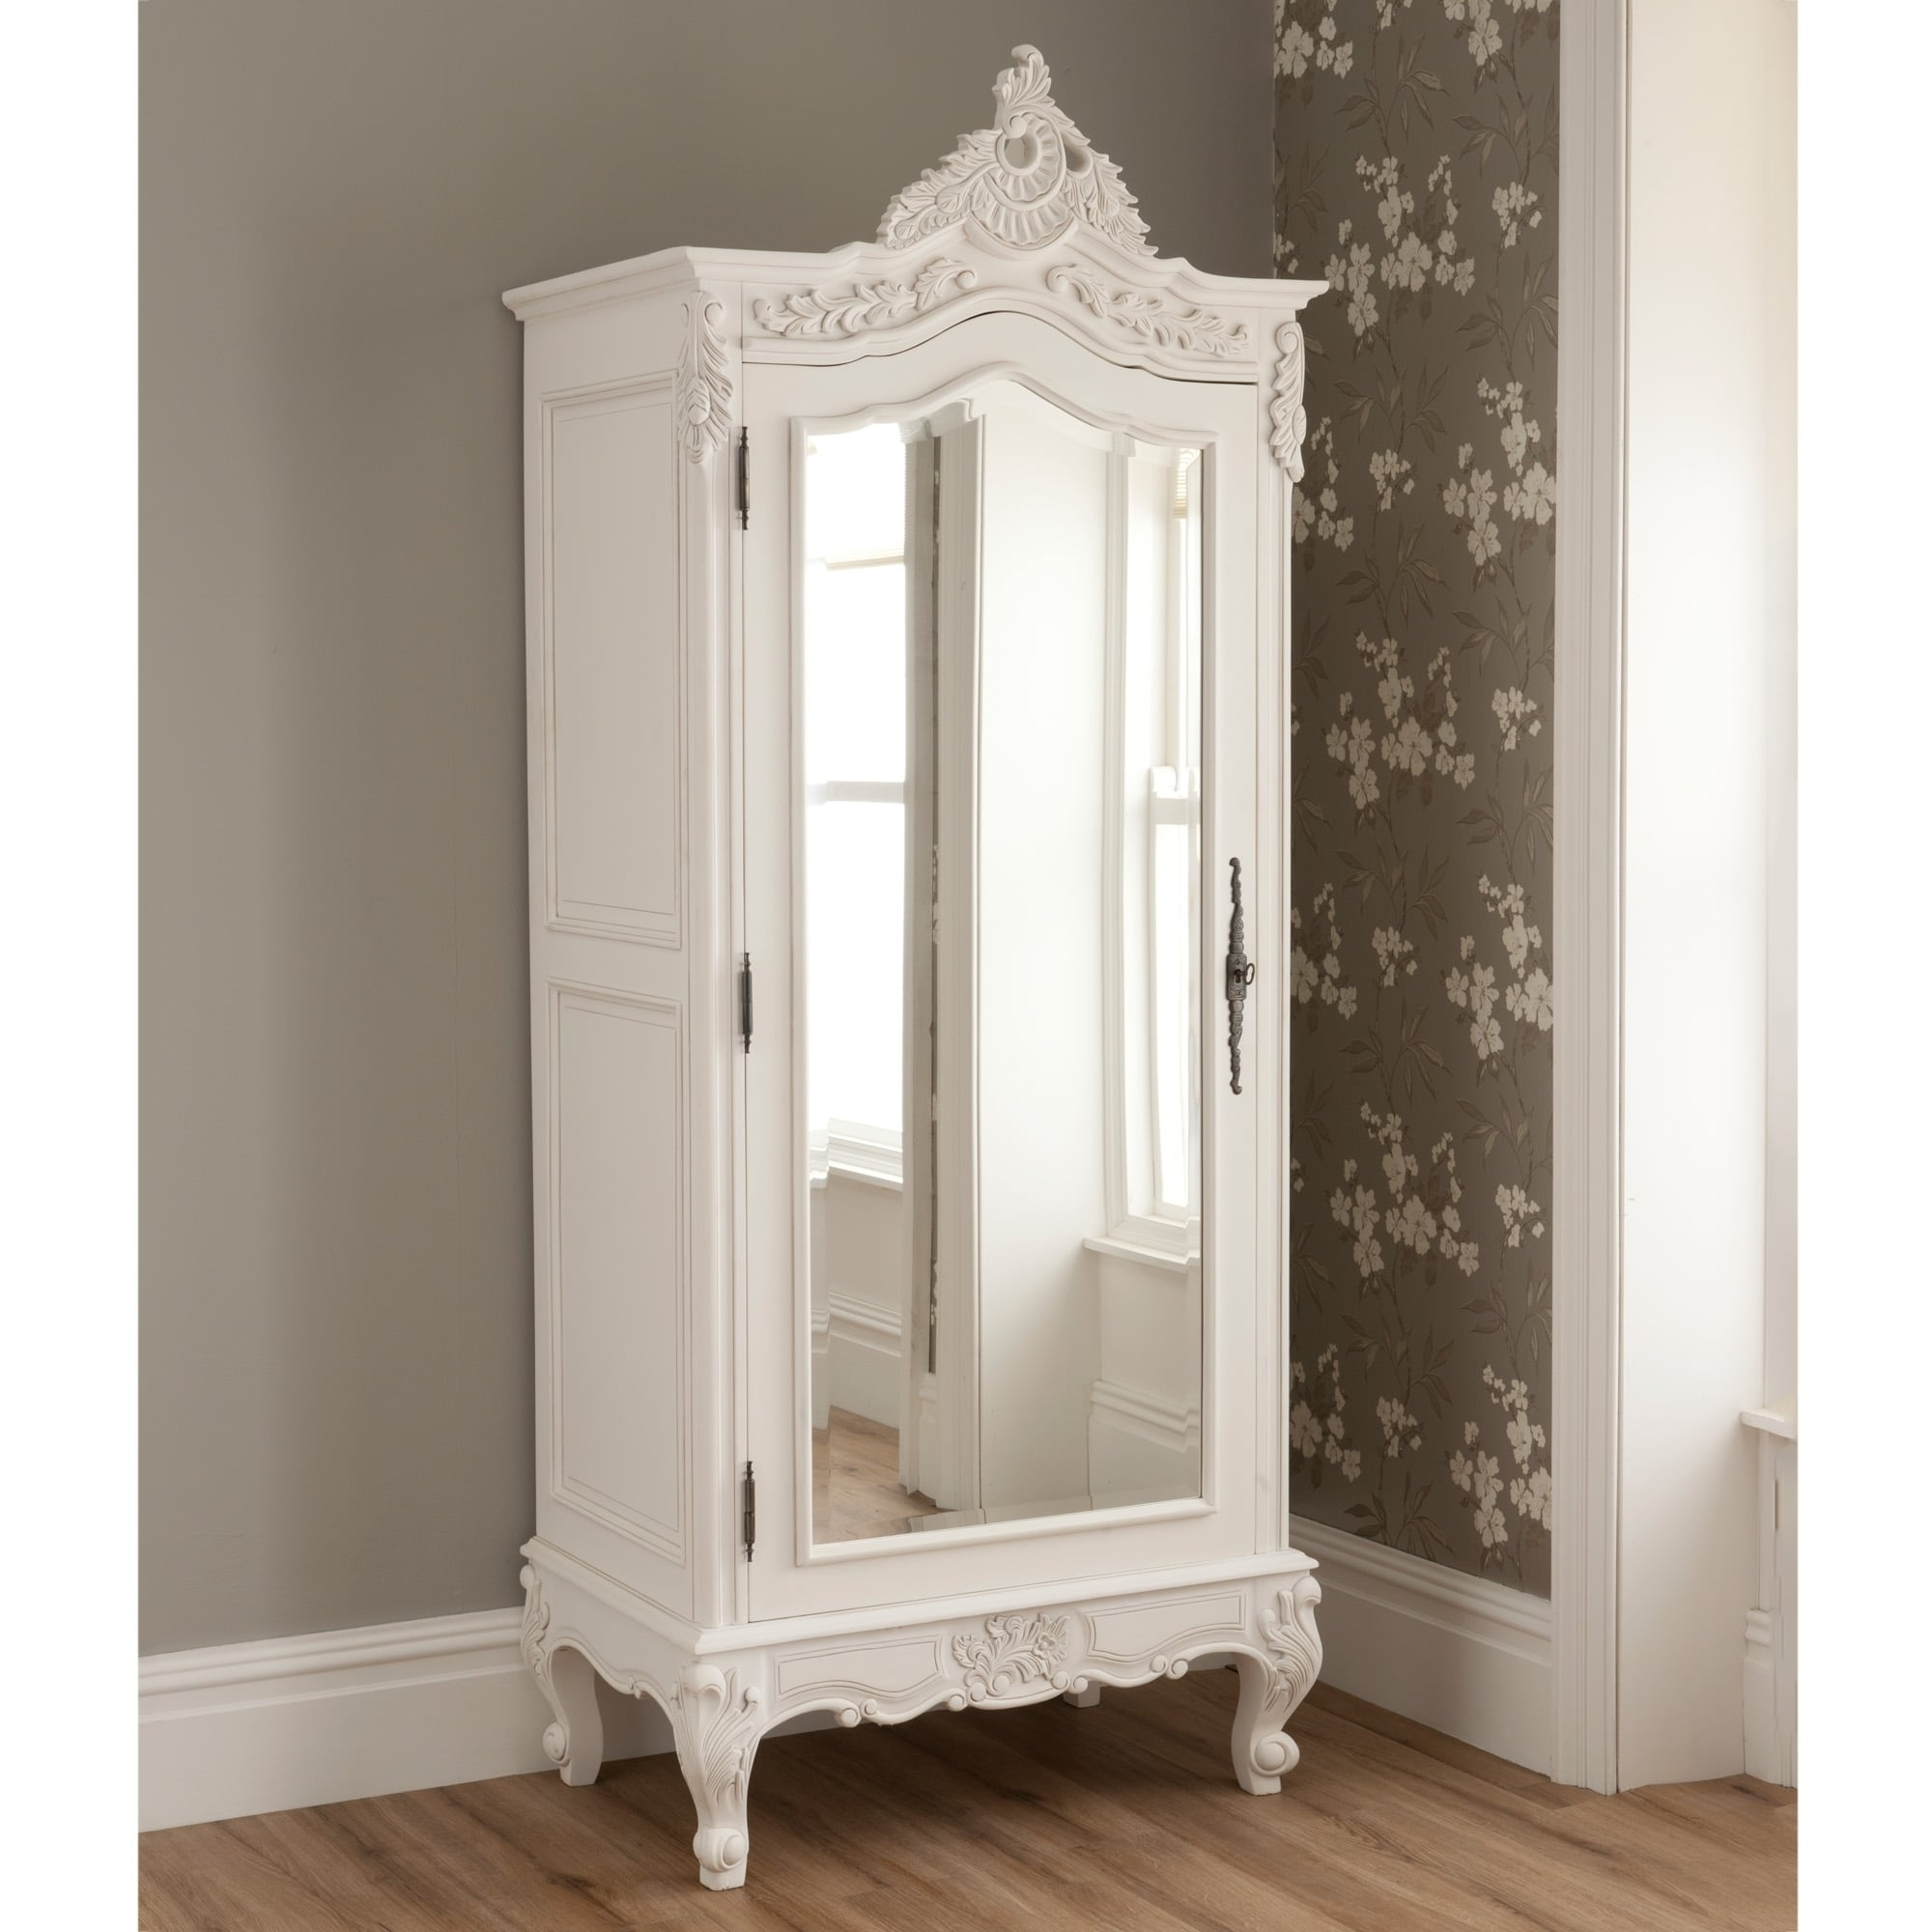 Well Liked La Rochelle Mirrored Antique French 1 Door Wardrobe With 1 Door Mirrored Wardrobes (View 3 of 15)